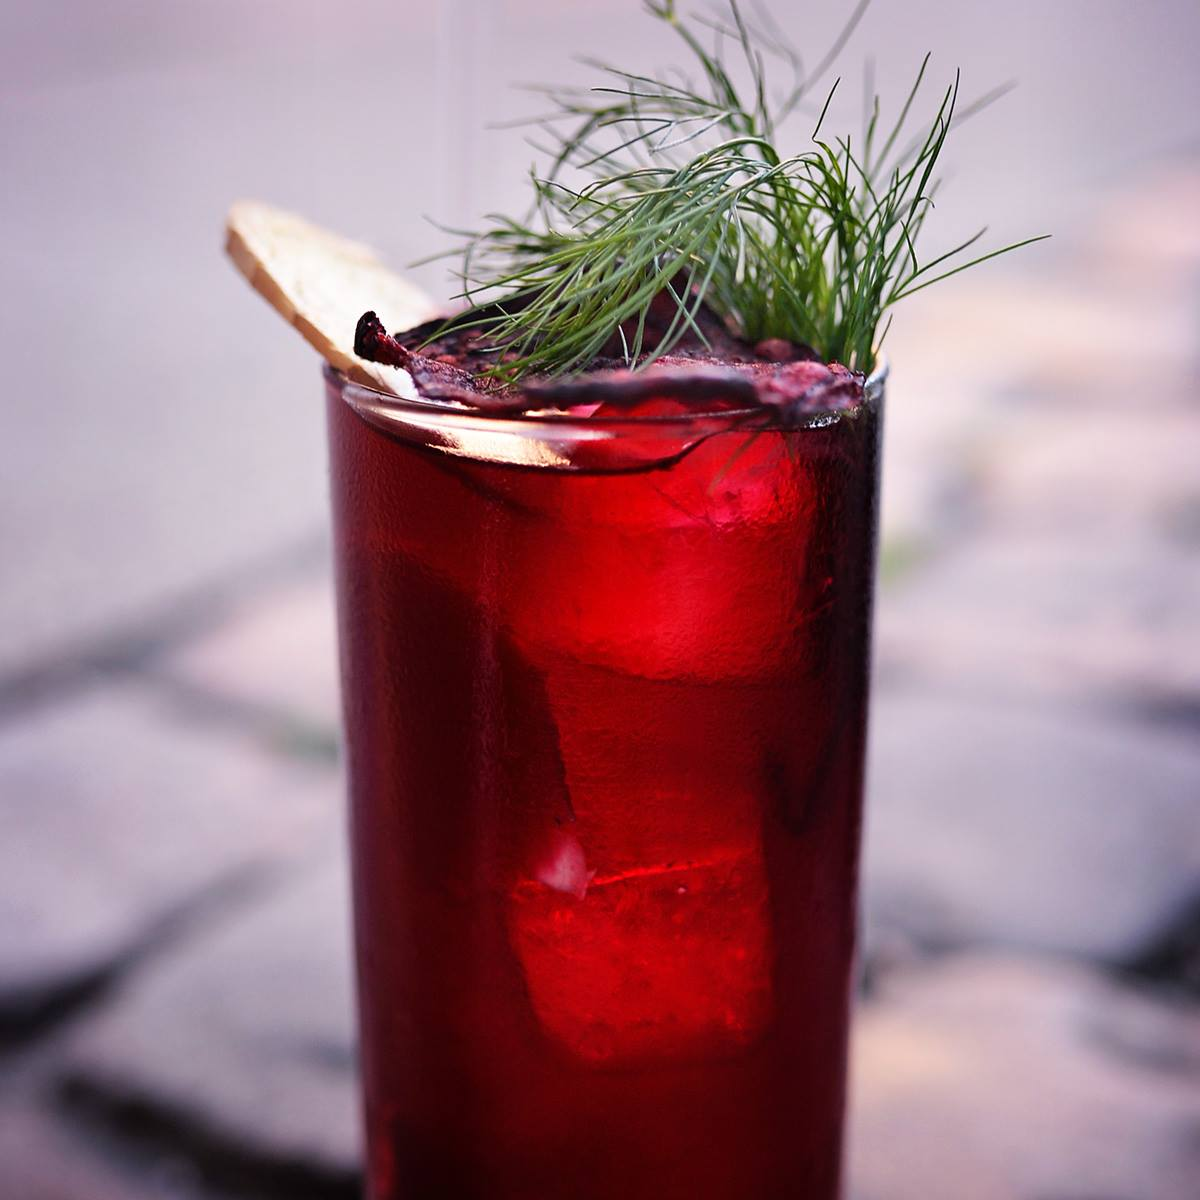 Beetroot basher from Duck and Cover - one of the best cocktail bars in Copenhagen, photo by Alexander Banck Petersen, photographer for Cocktails of Copenhagen